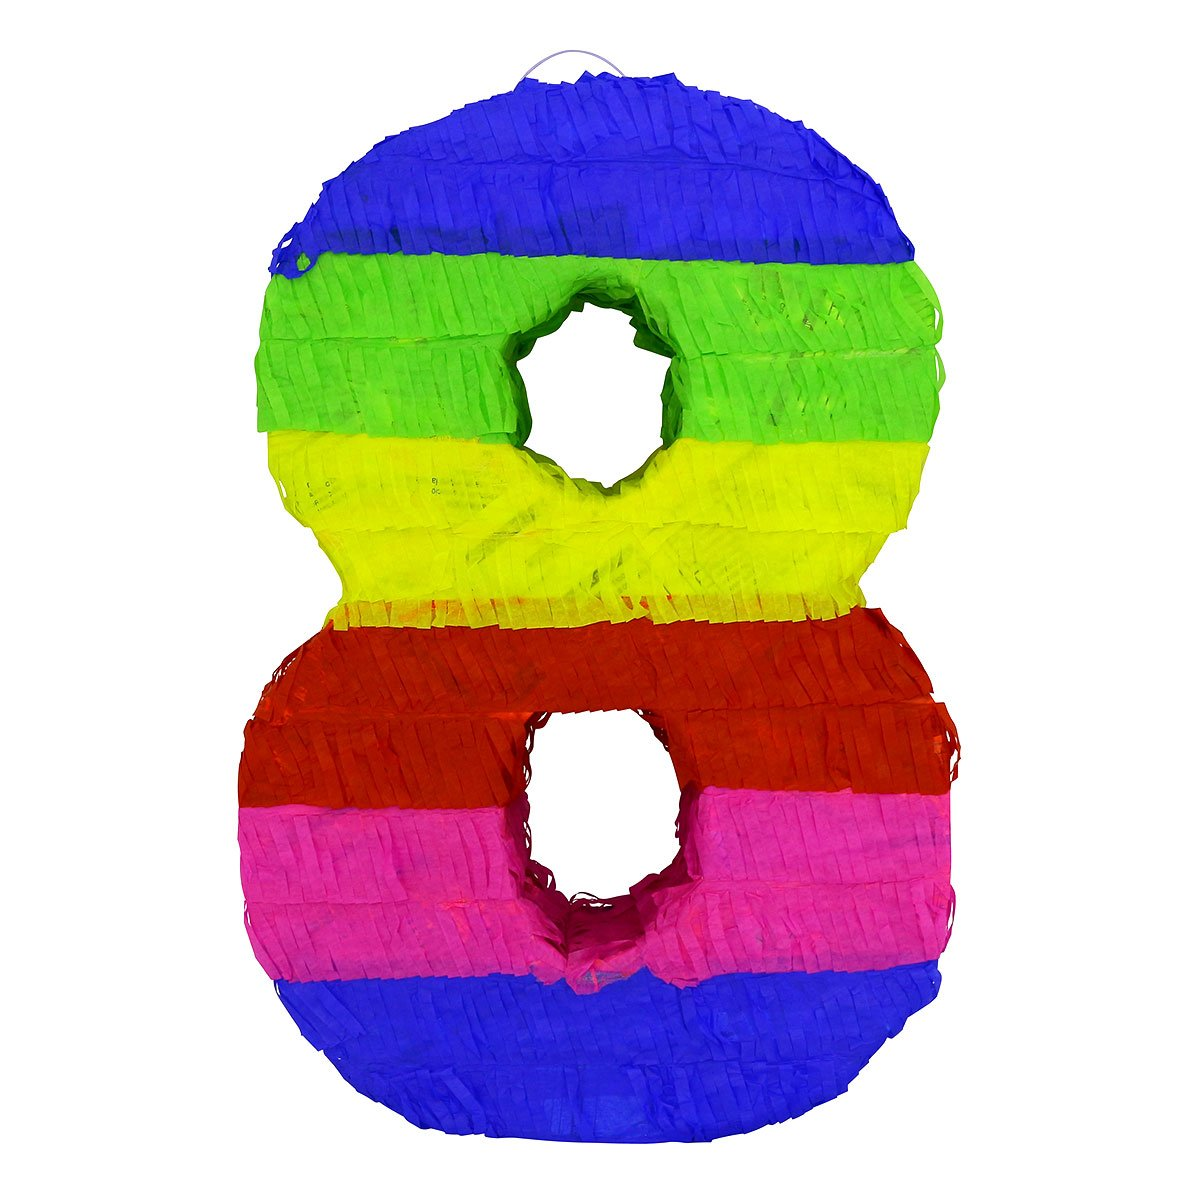 LYTIO - Multicolor Paper 3D Number Eight Pinata (Piñata) – Great for Any Party, Décor, Photo Prop. by LYTIO